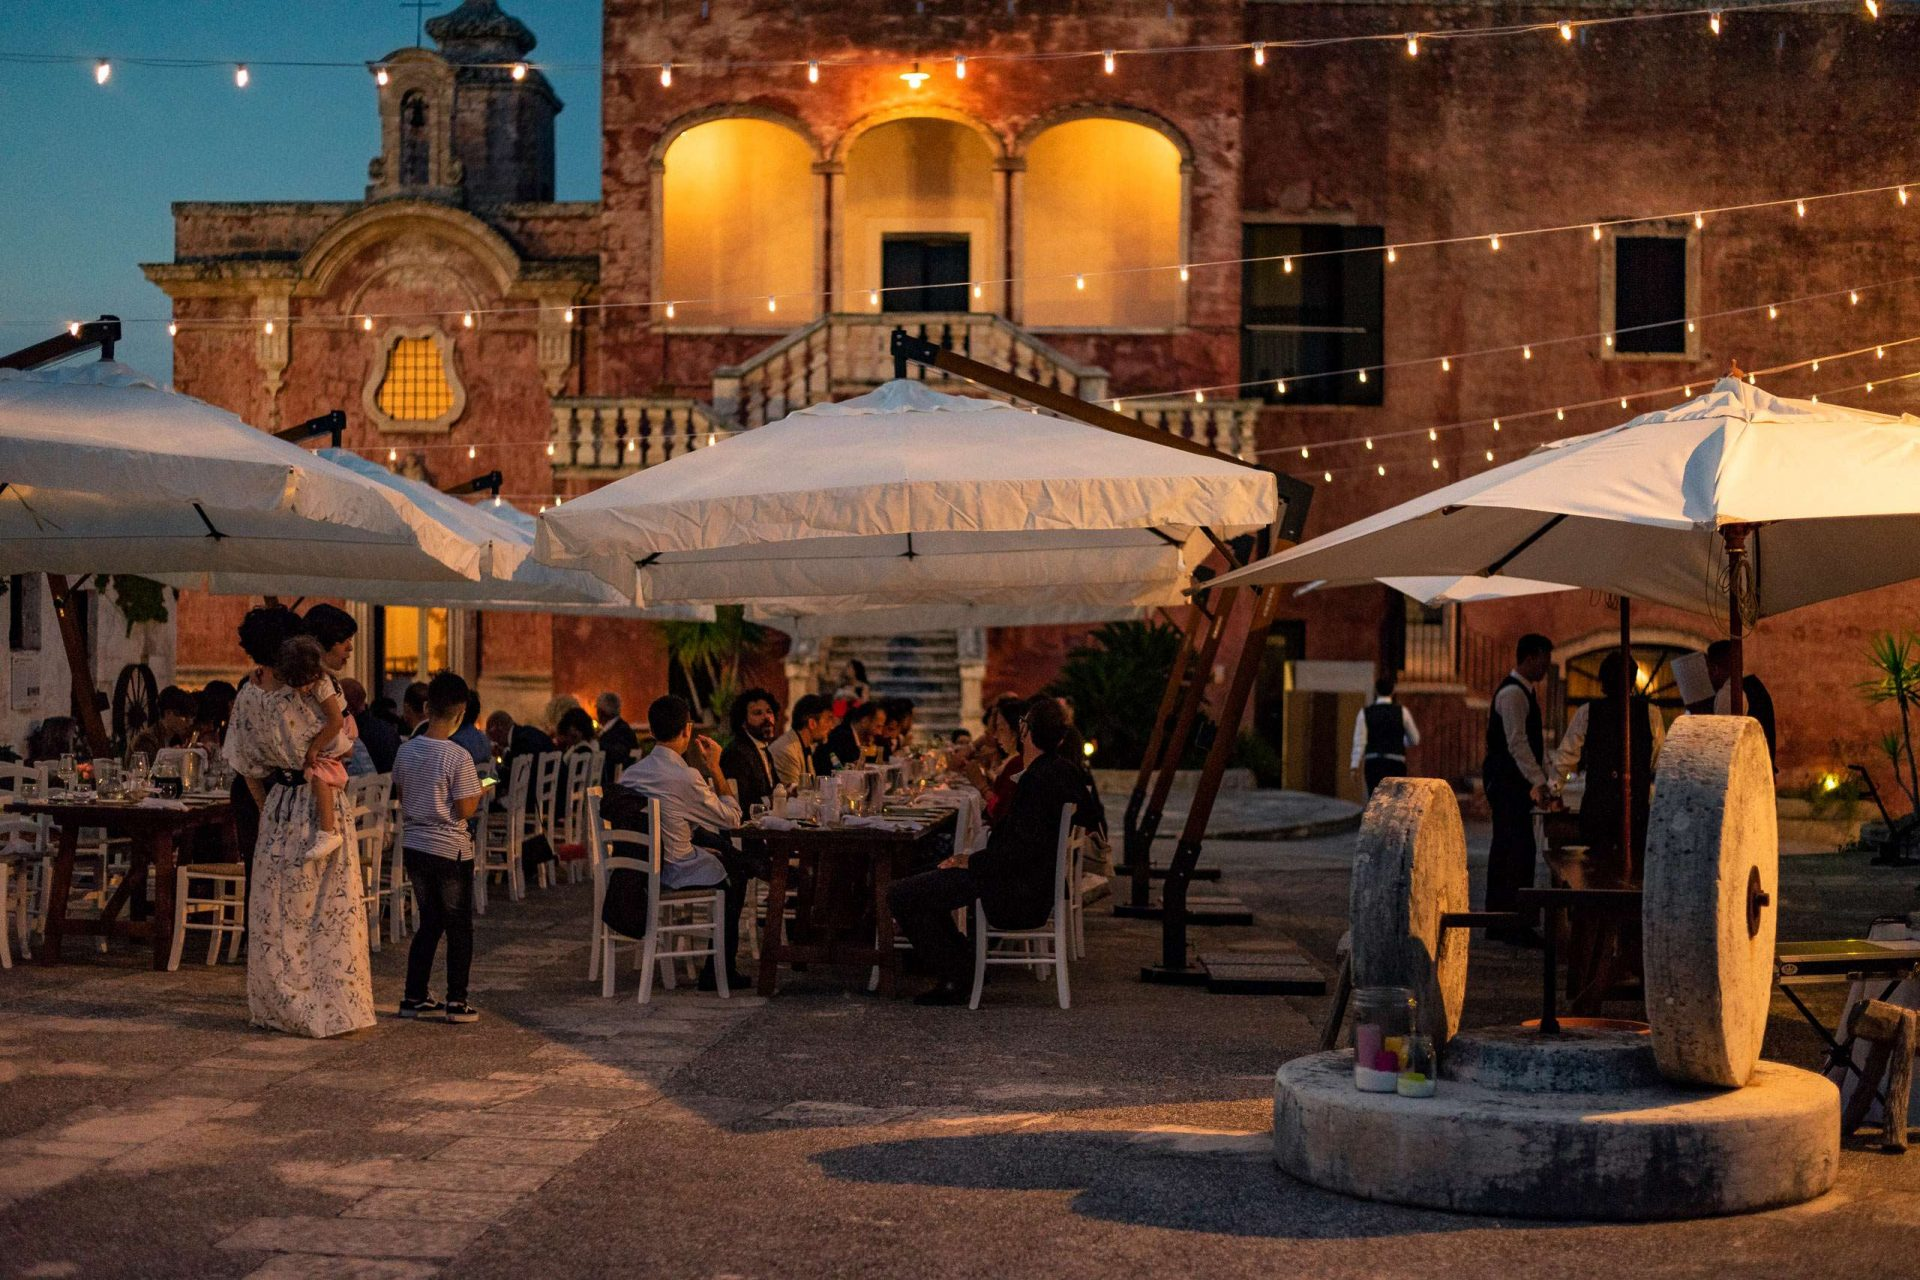 A wedding in Puglia by night at Masseria Spina Resort